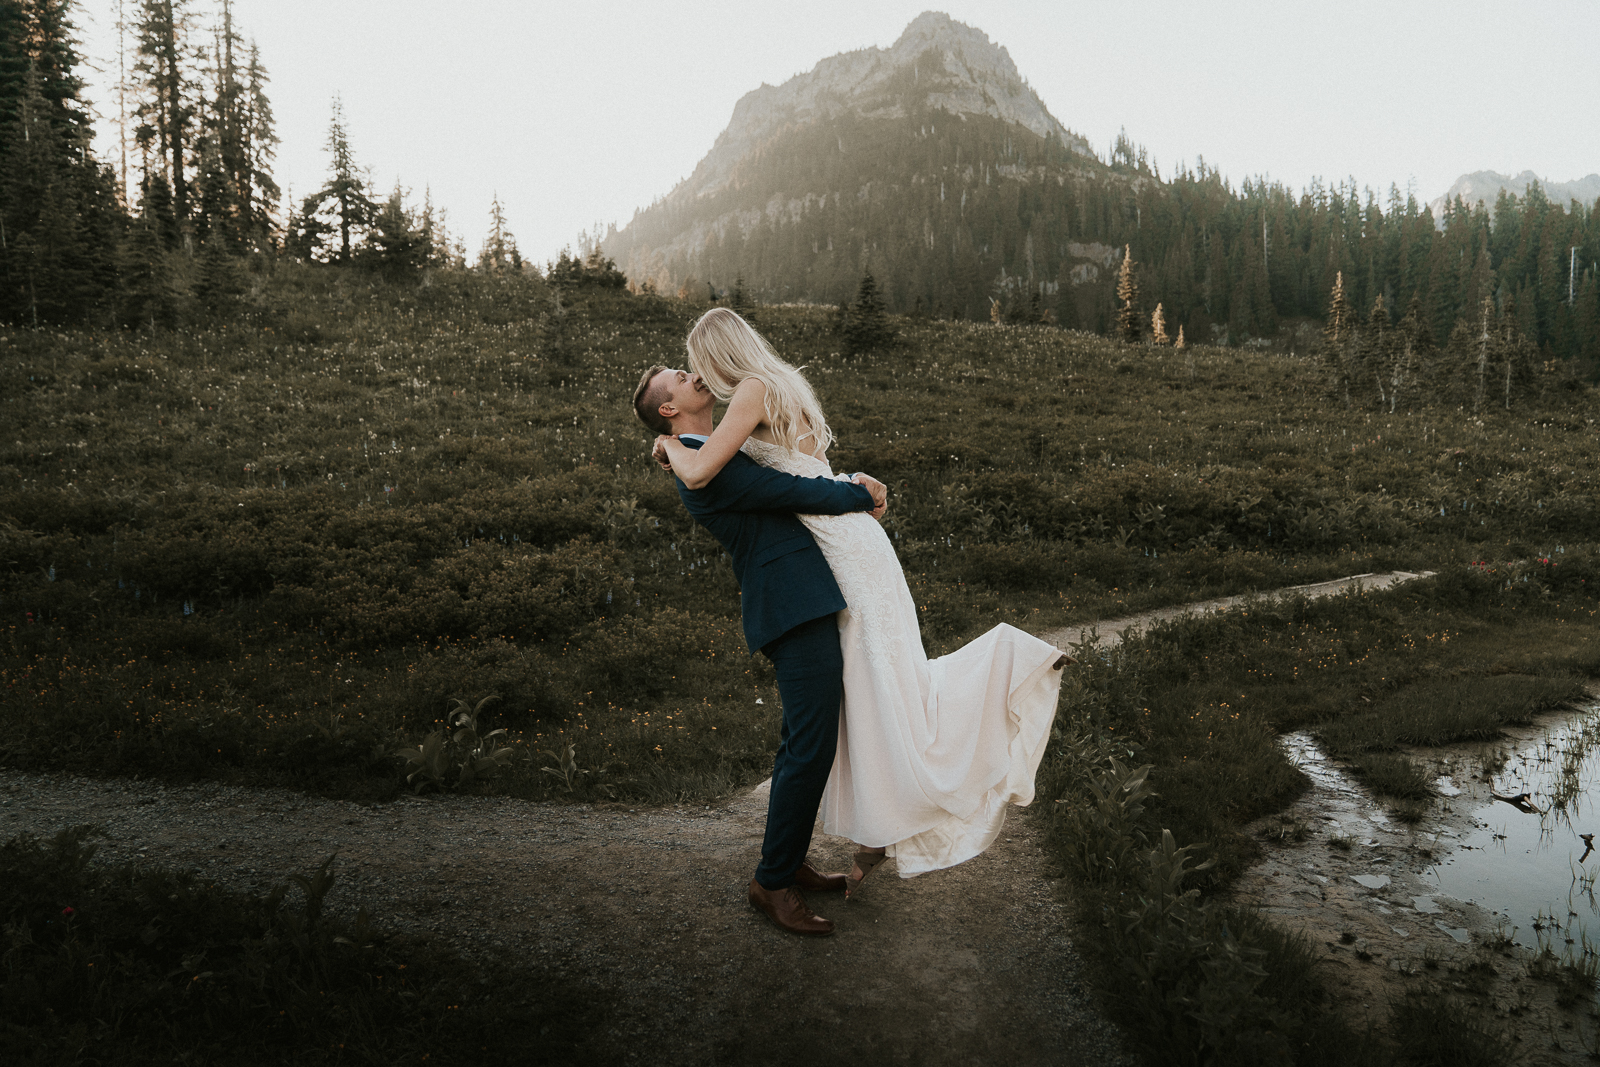 Sunset Elopement at Tipsoo Lake by Anna Tee Photography